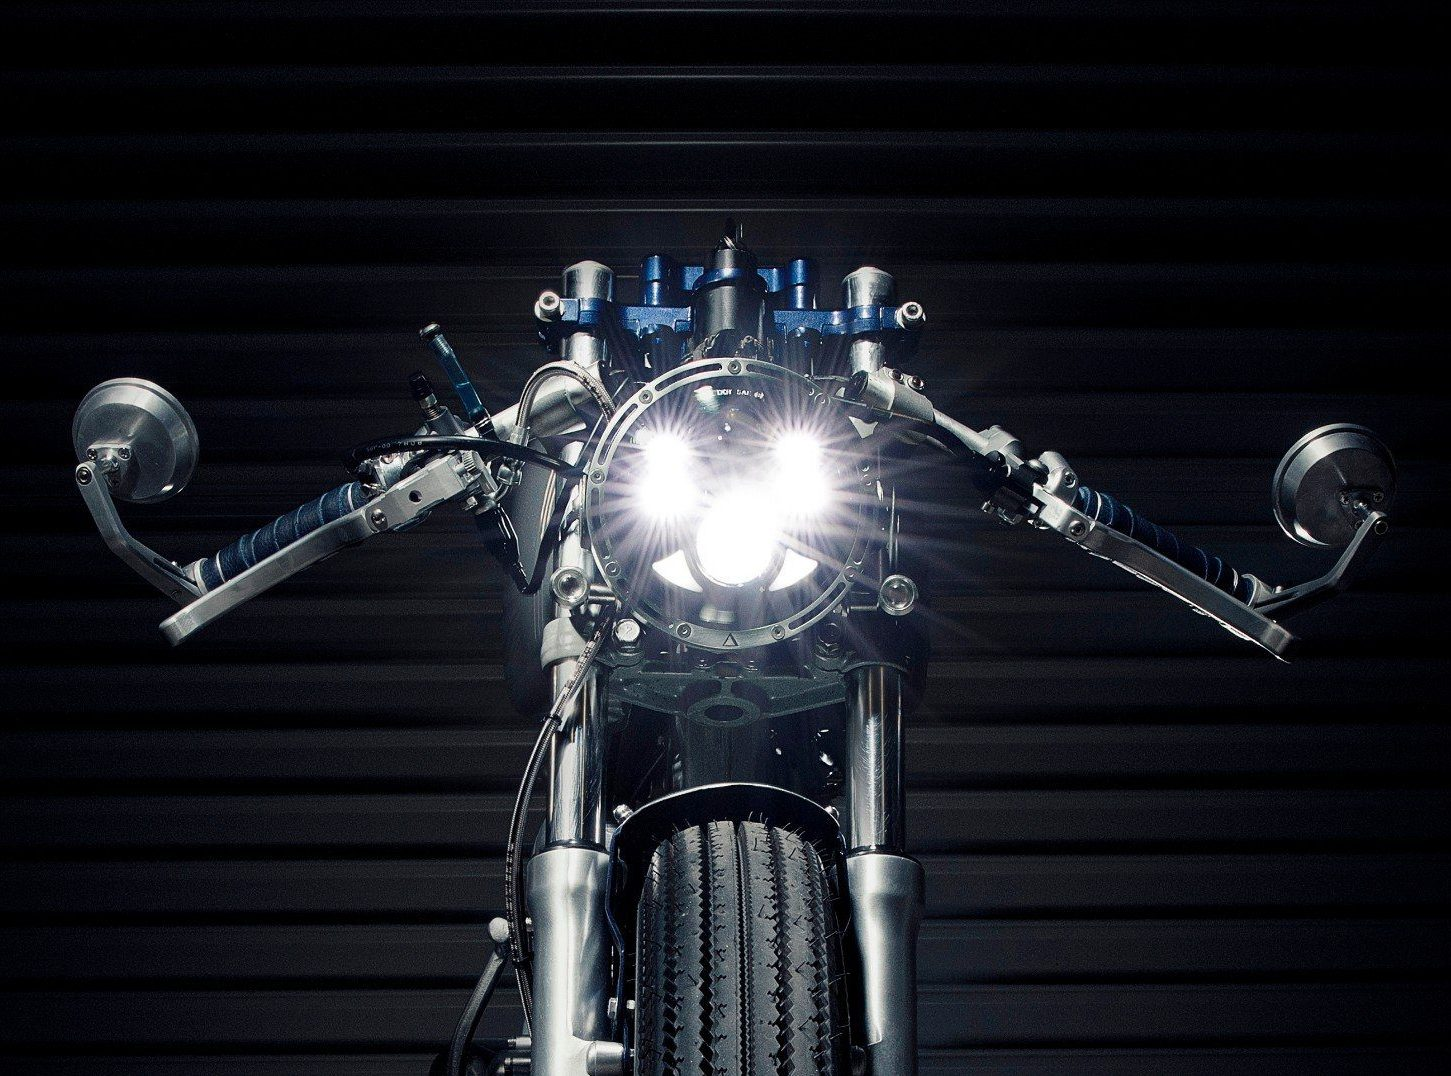 Installing a cafe racer led headlight